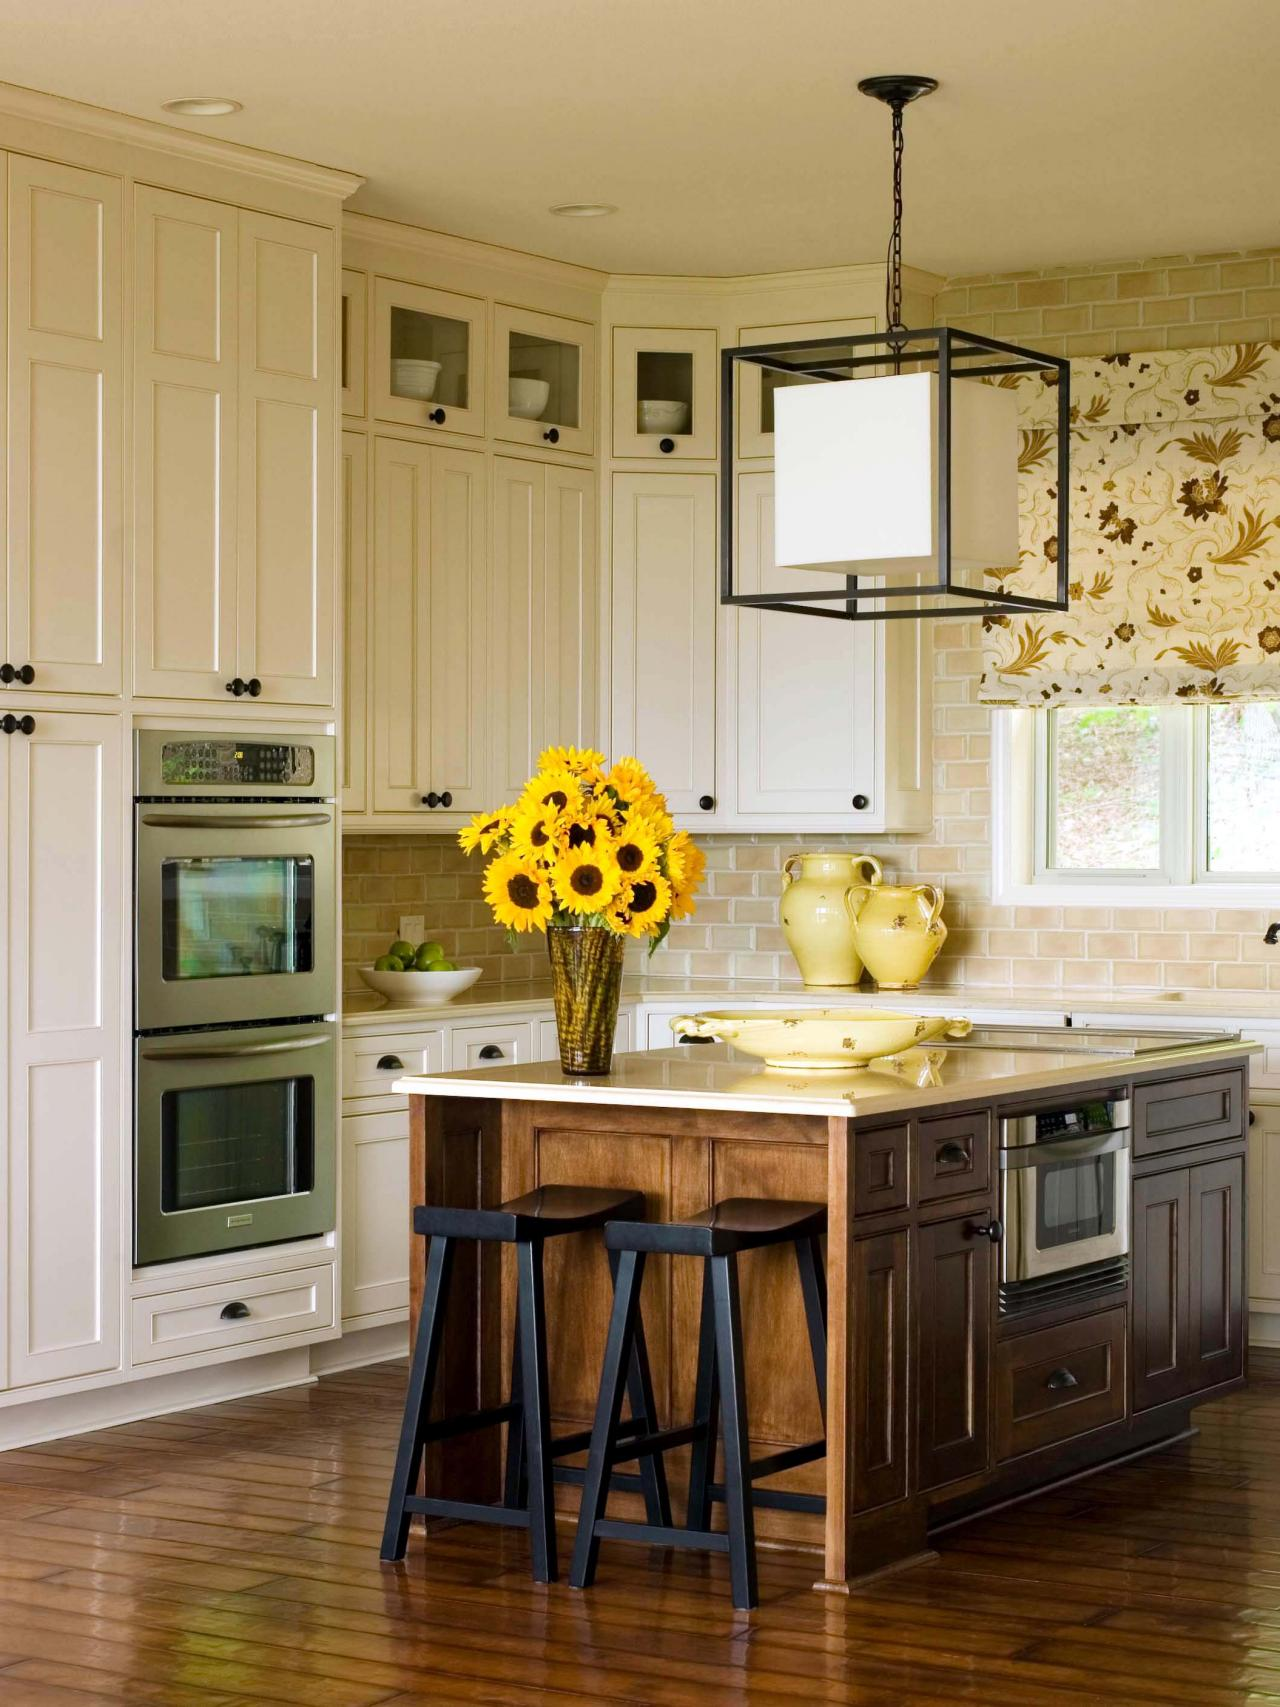 New resurfacing kitchen cabinets kitchen cabinets: should your replace or reface? rnxgbqd